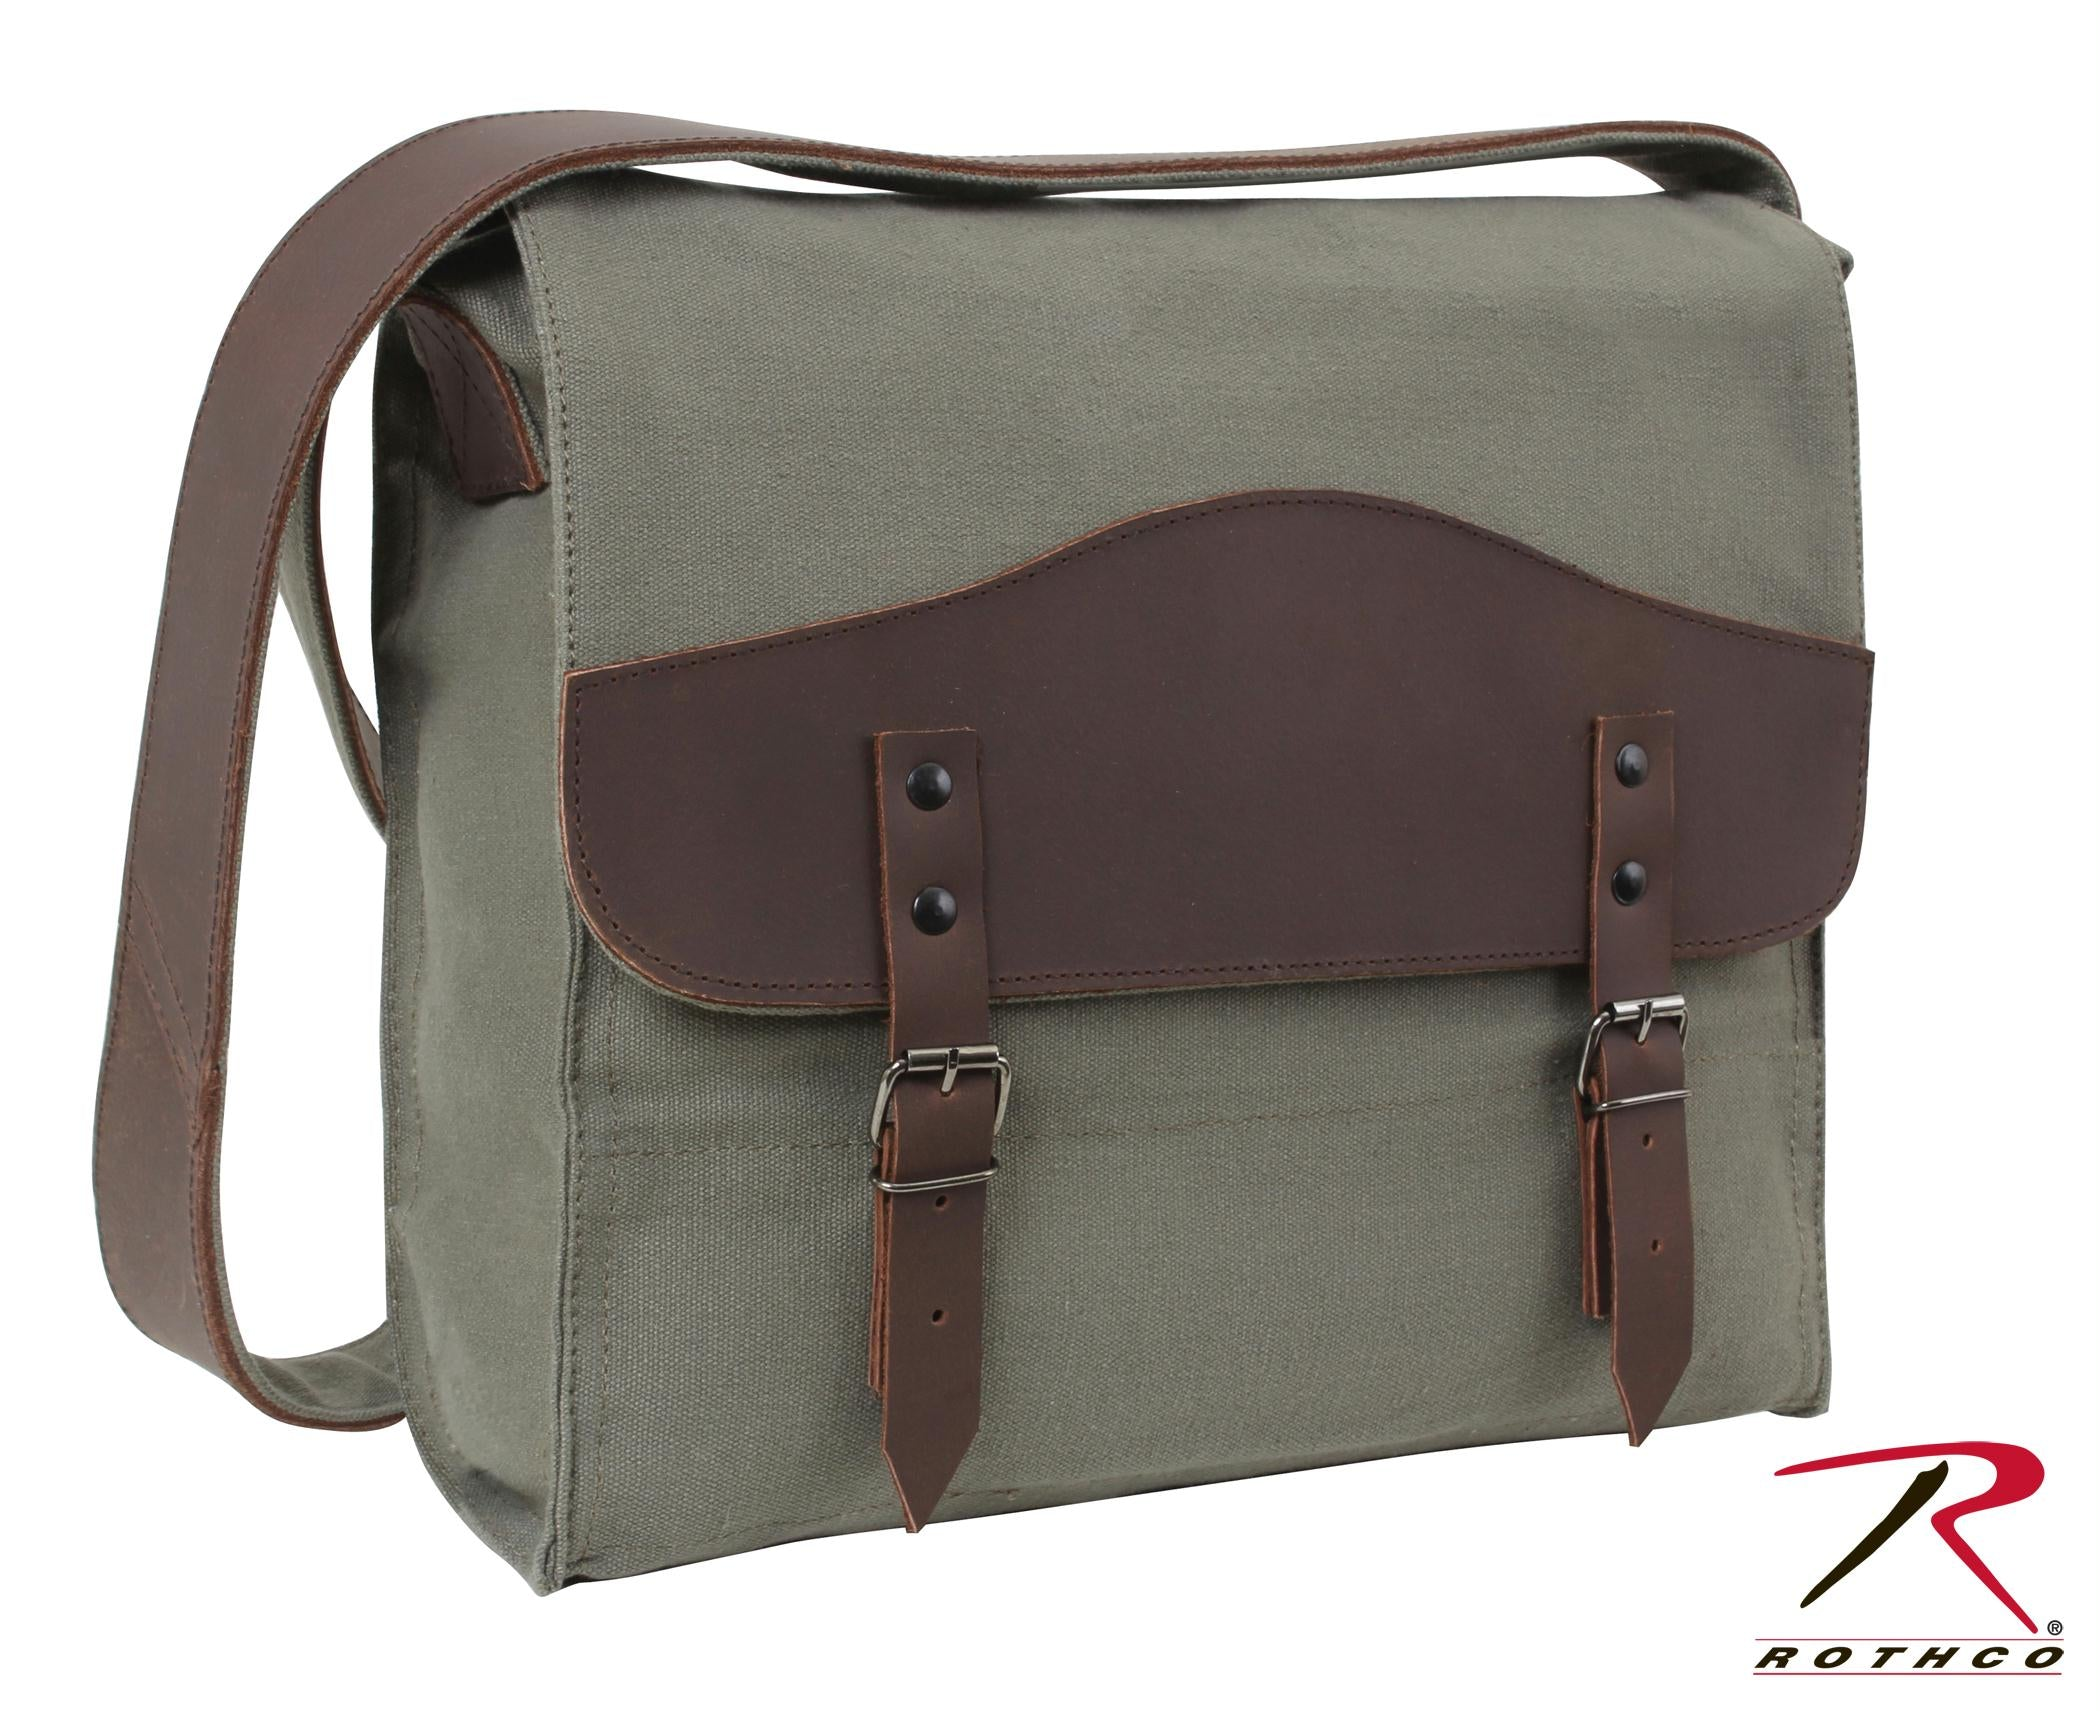 Rothco Vintage Canvas Medic Bag w/ Leather Accents - Olive Drab